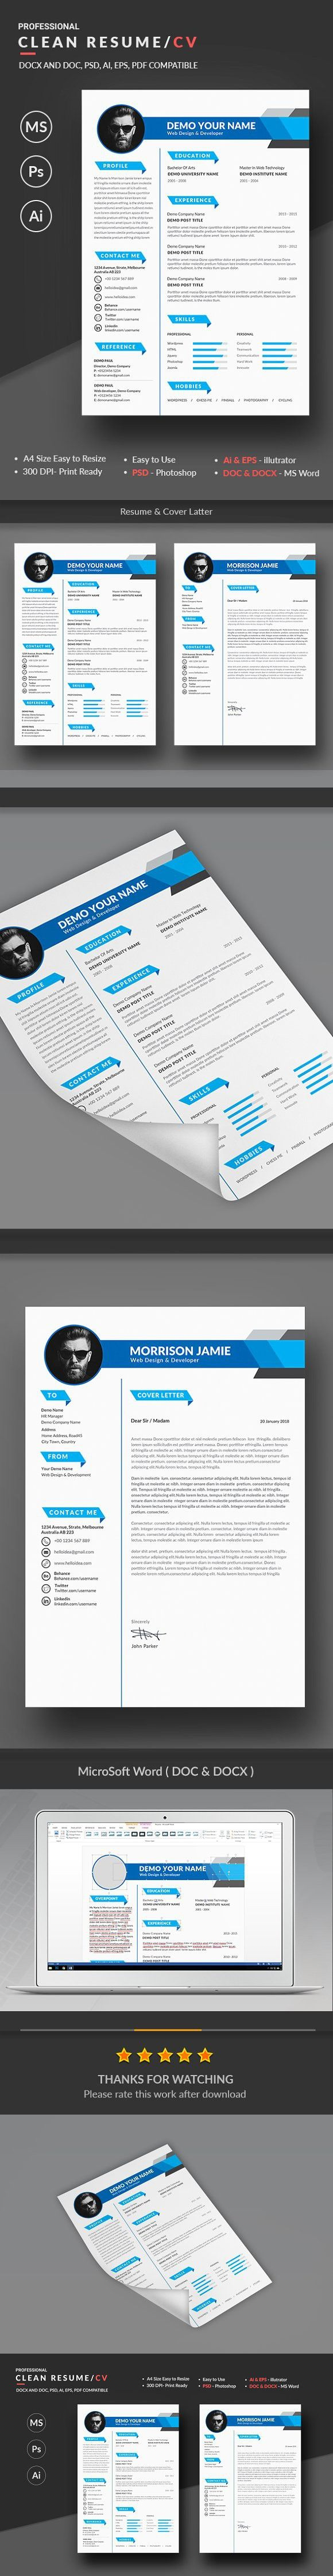 ResumeCV ResumeCV Resume Templates Pinterest